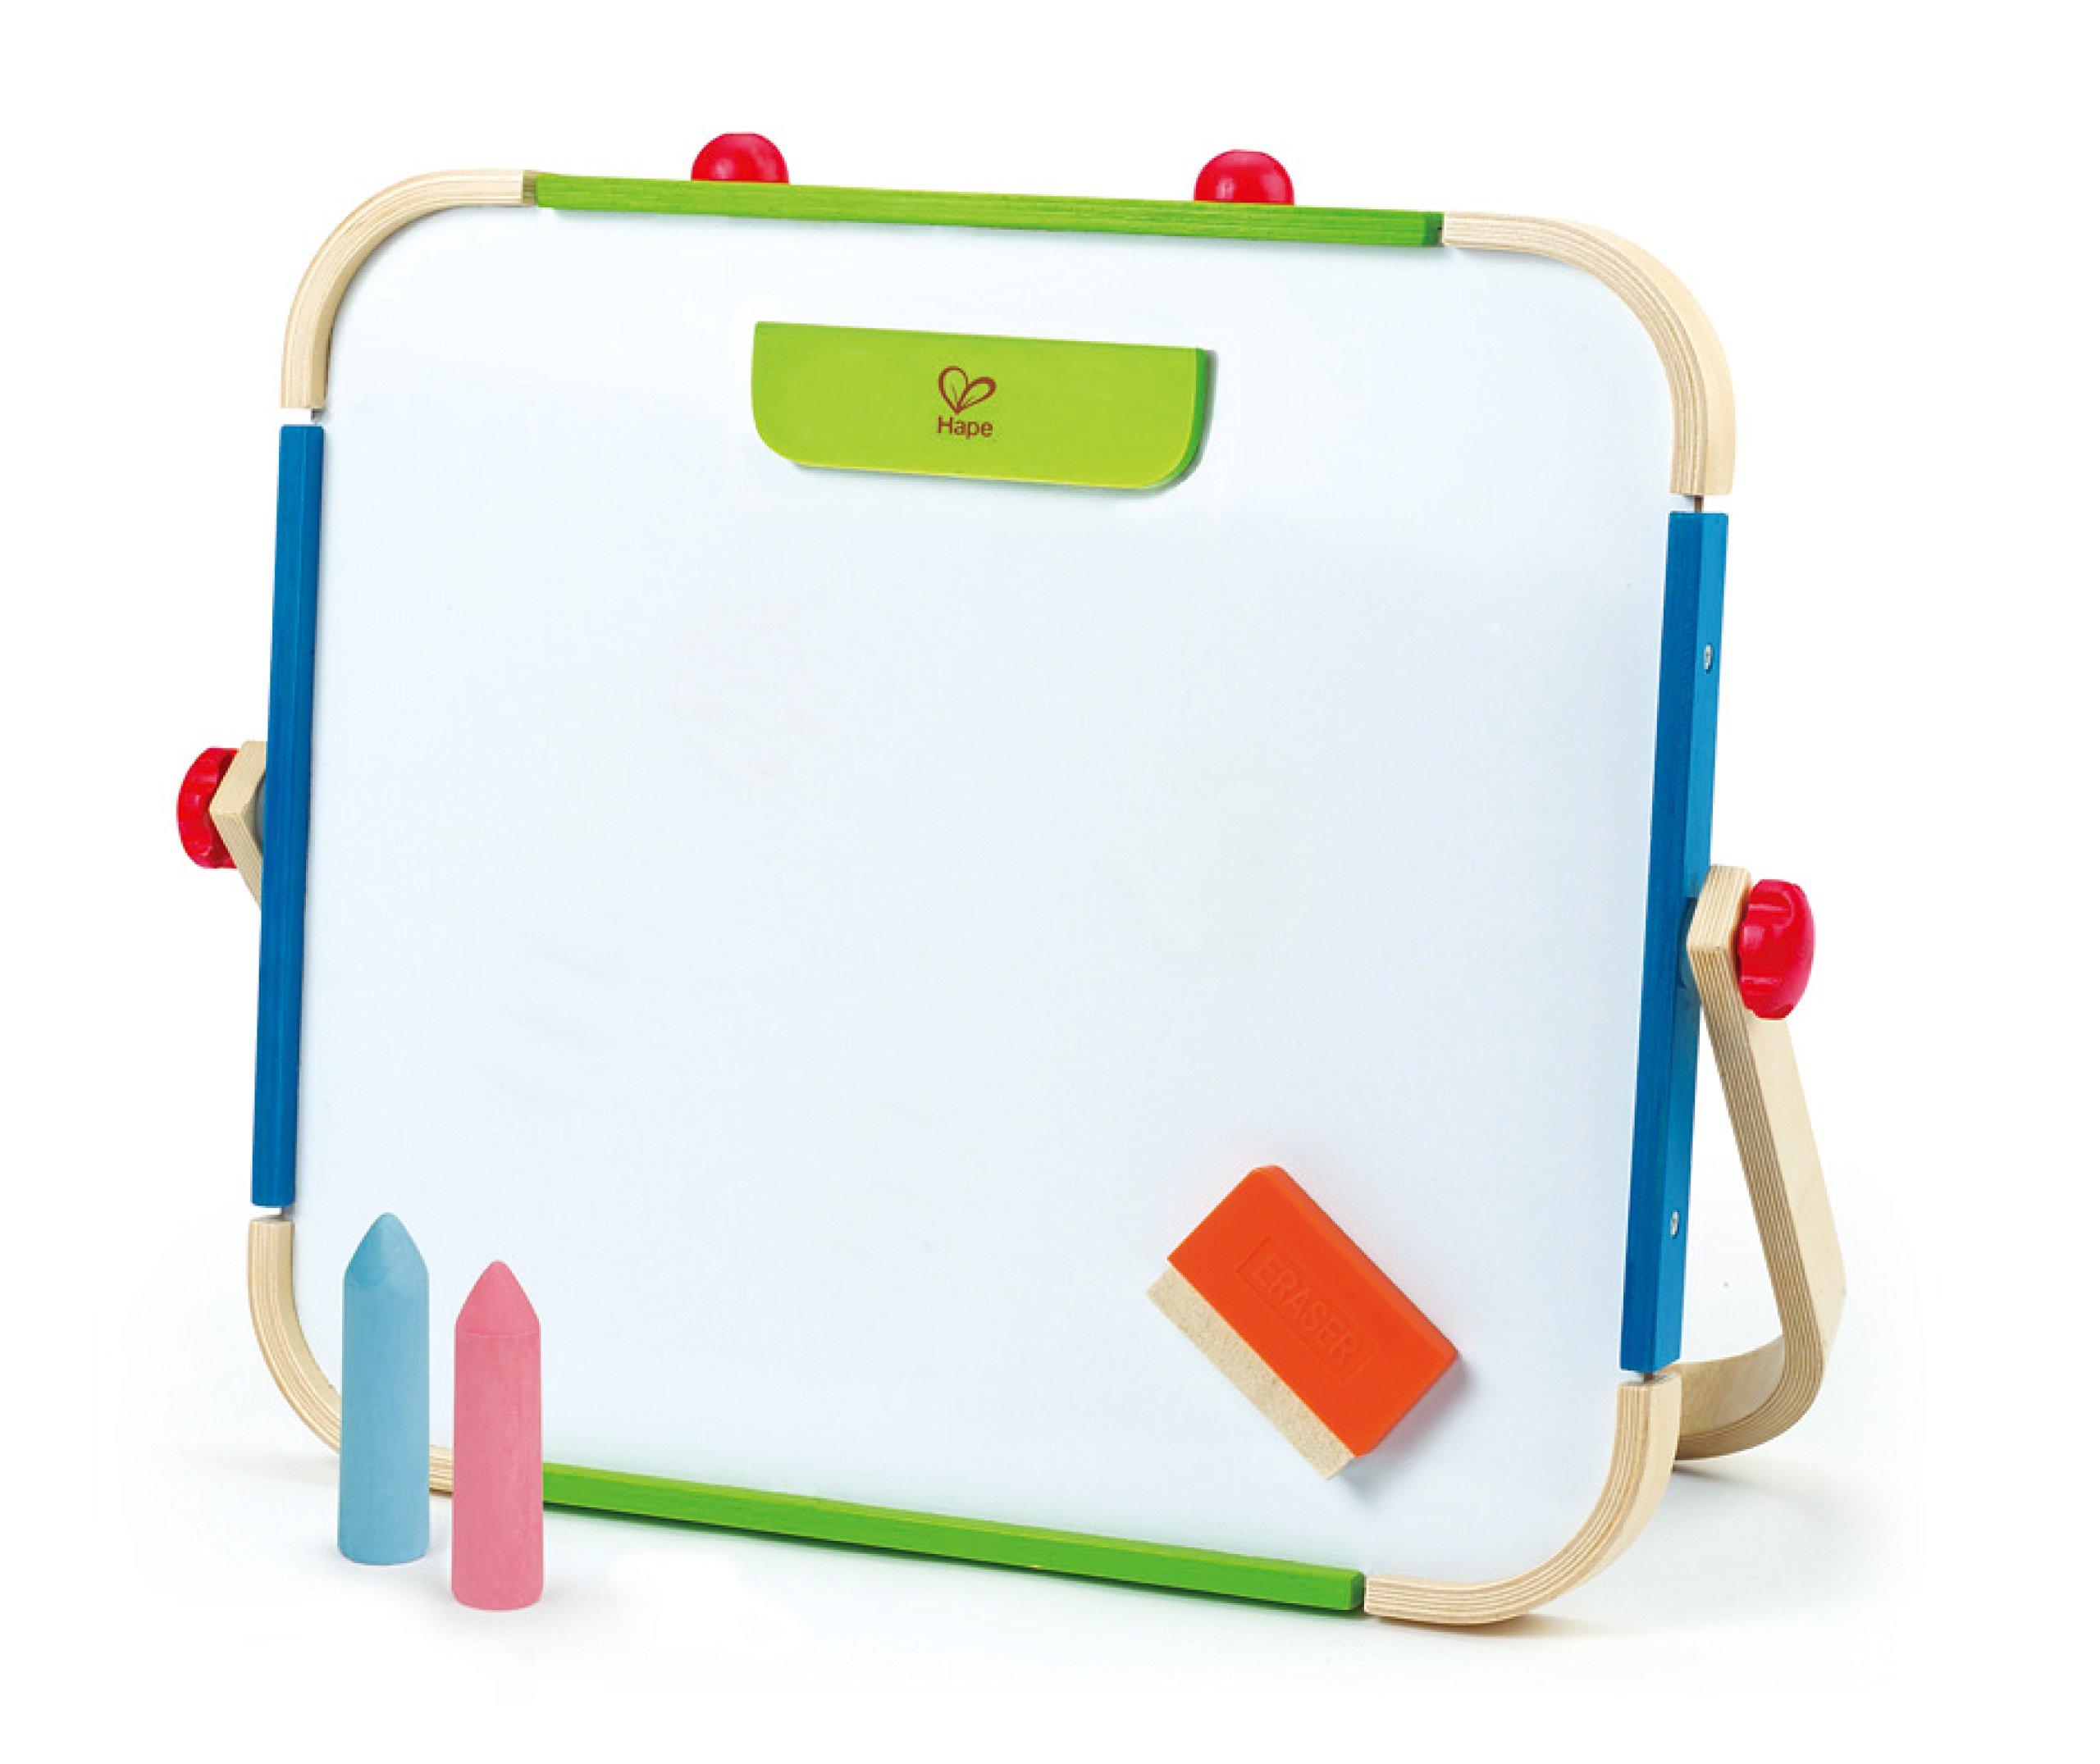 Hape Early Explorer Anywhere Table Top Art Studio by Award Winning Double-Sided Wooden Kids Easel Whiteboard/Chalkboard with 2 Chalk Pieces, Eraser and Magnetic Wood Clamp for Paper